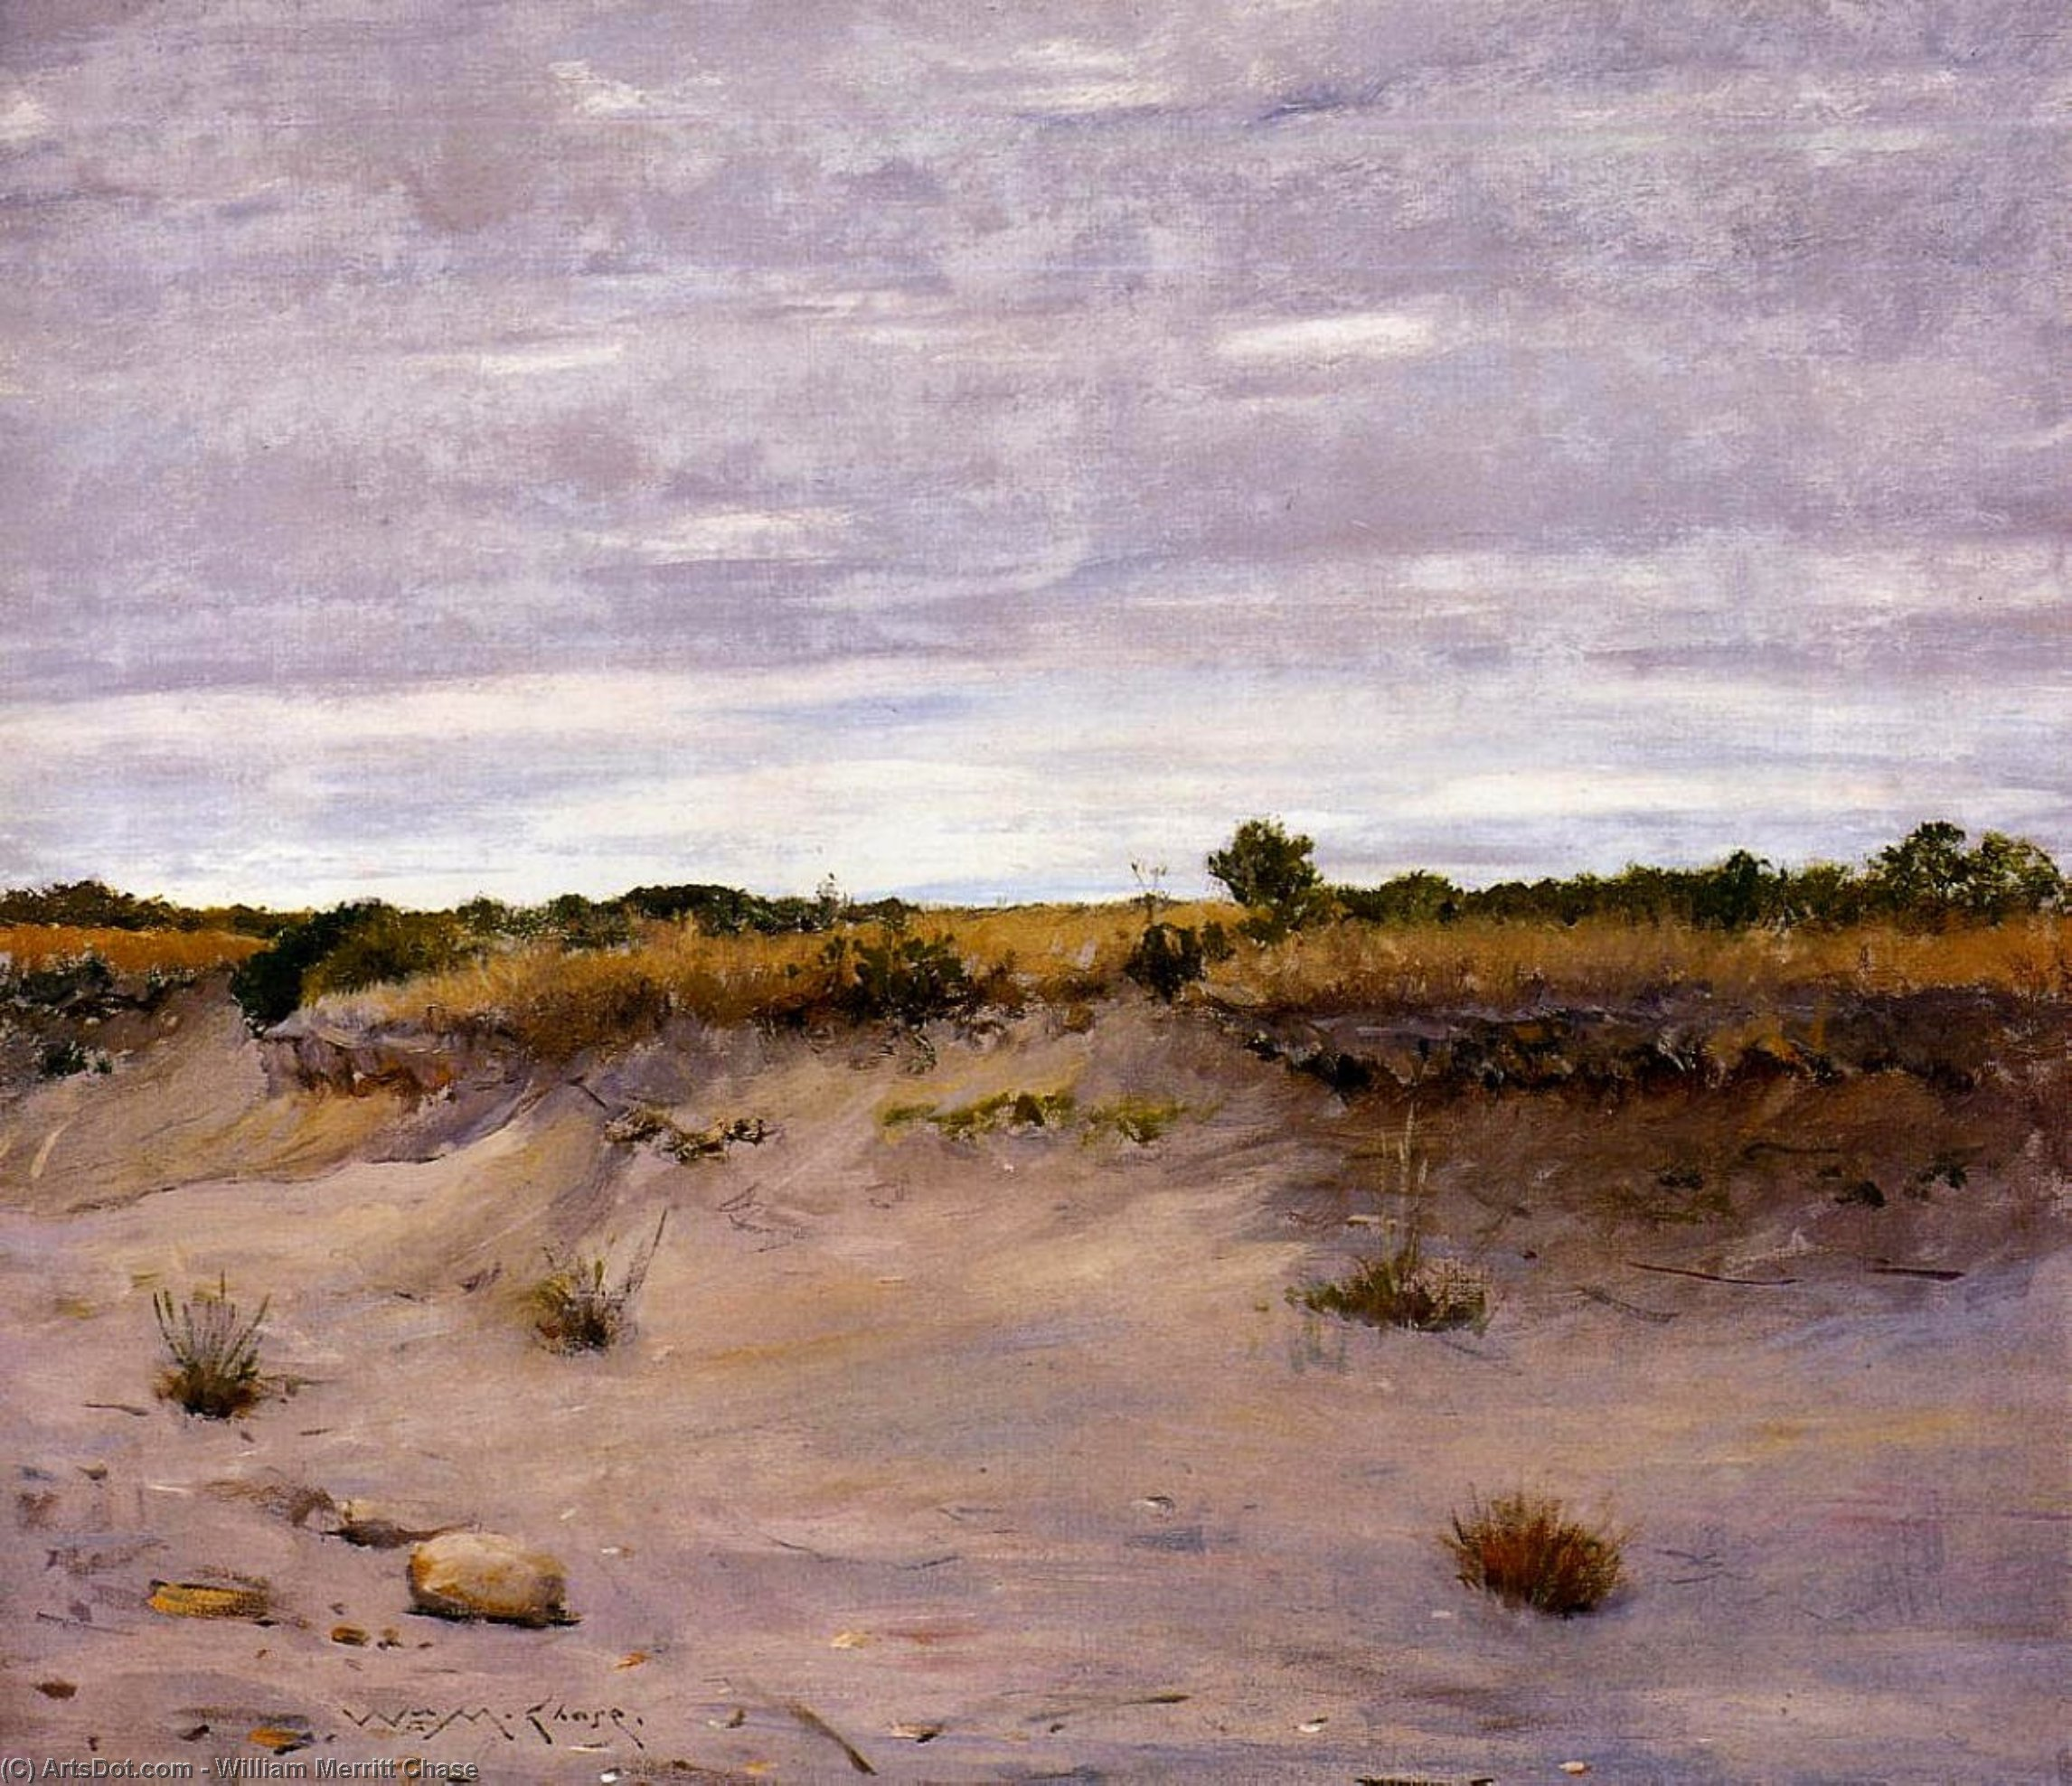 vent sands swept , Shinnecock , long île, huile sur toile de William Merritt Chase (1849-1916, United States)